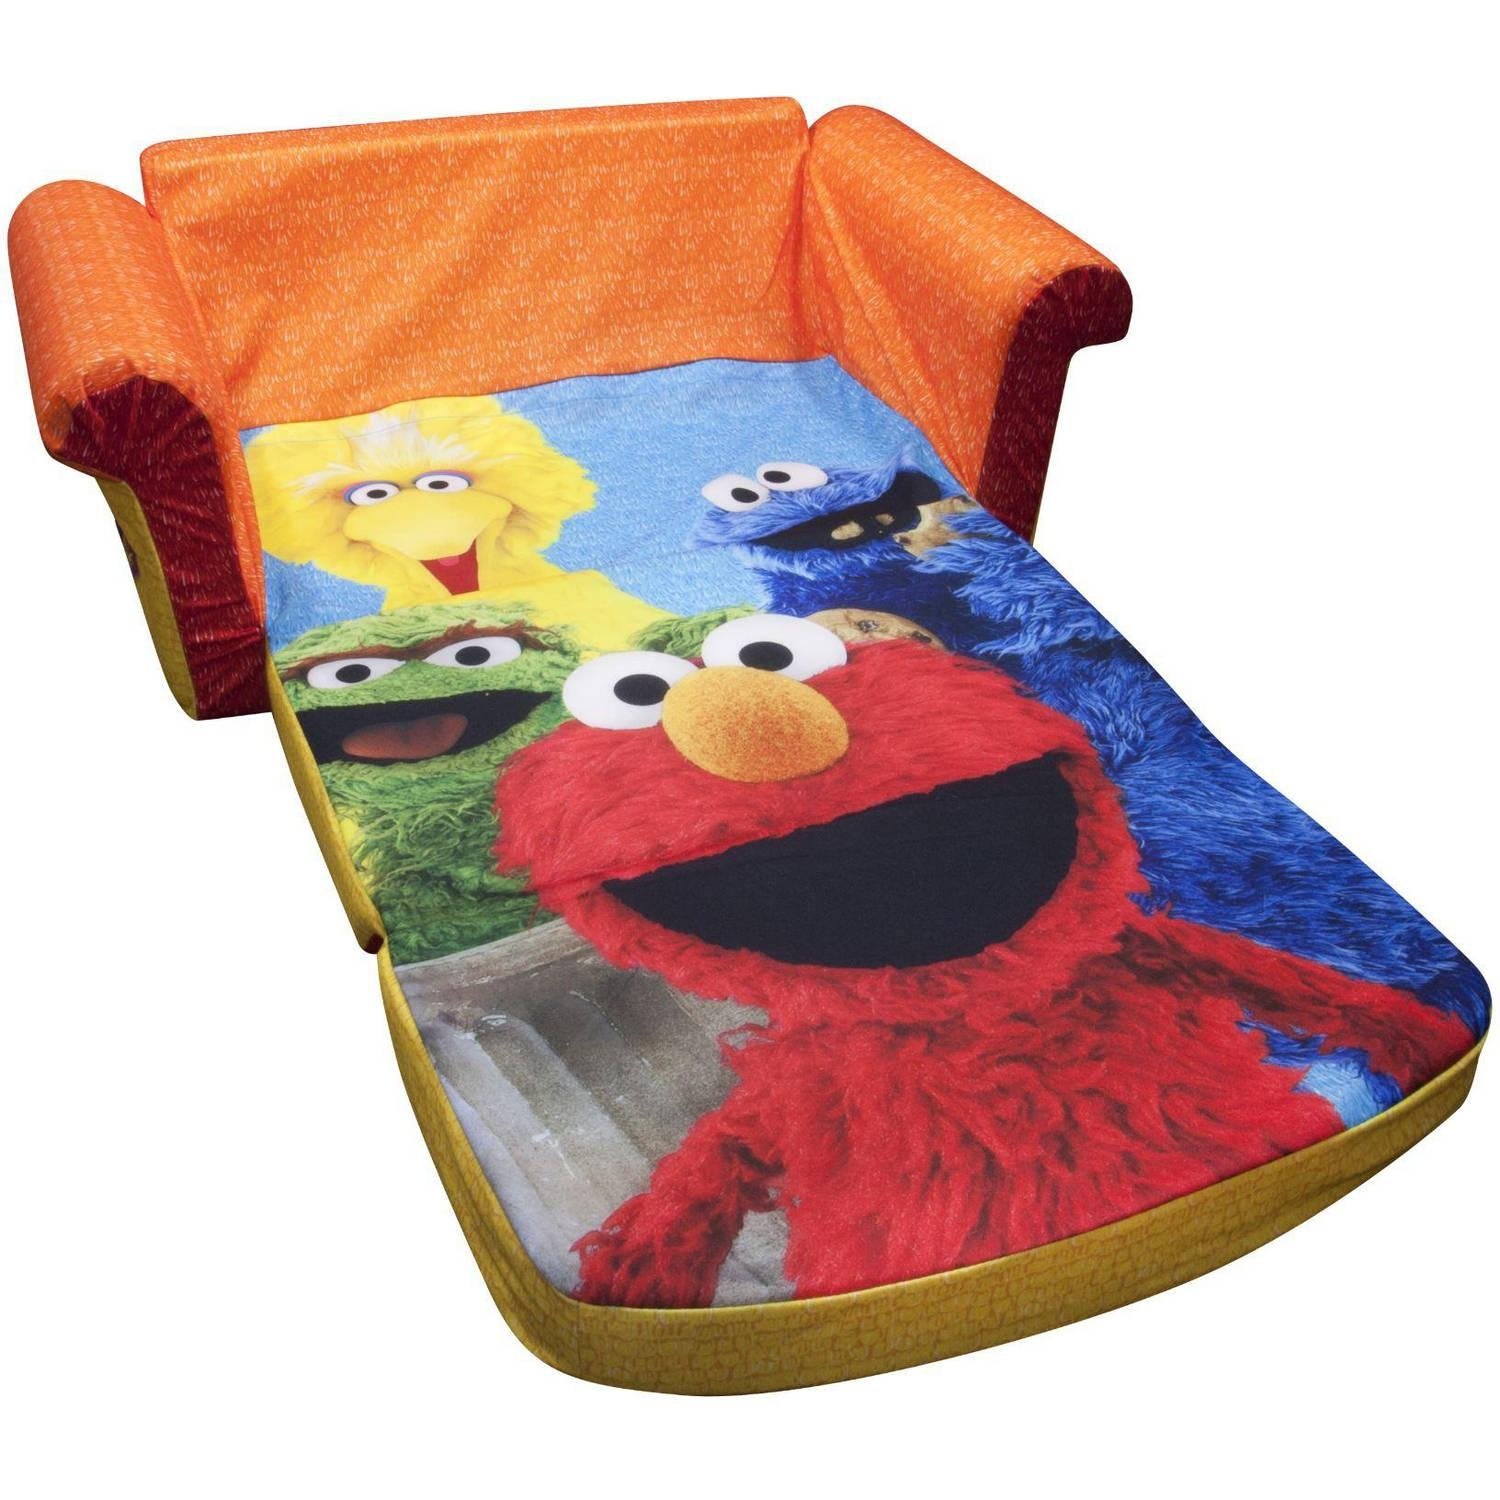 Marshmallow 2 In 1 Flip Open Sofa, Sesame Street's Elmo – Walmart With Regard To Flip Out Sofa Bed Toddlers (Image 10 of 20)